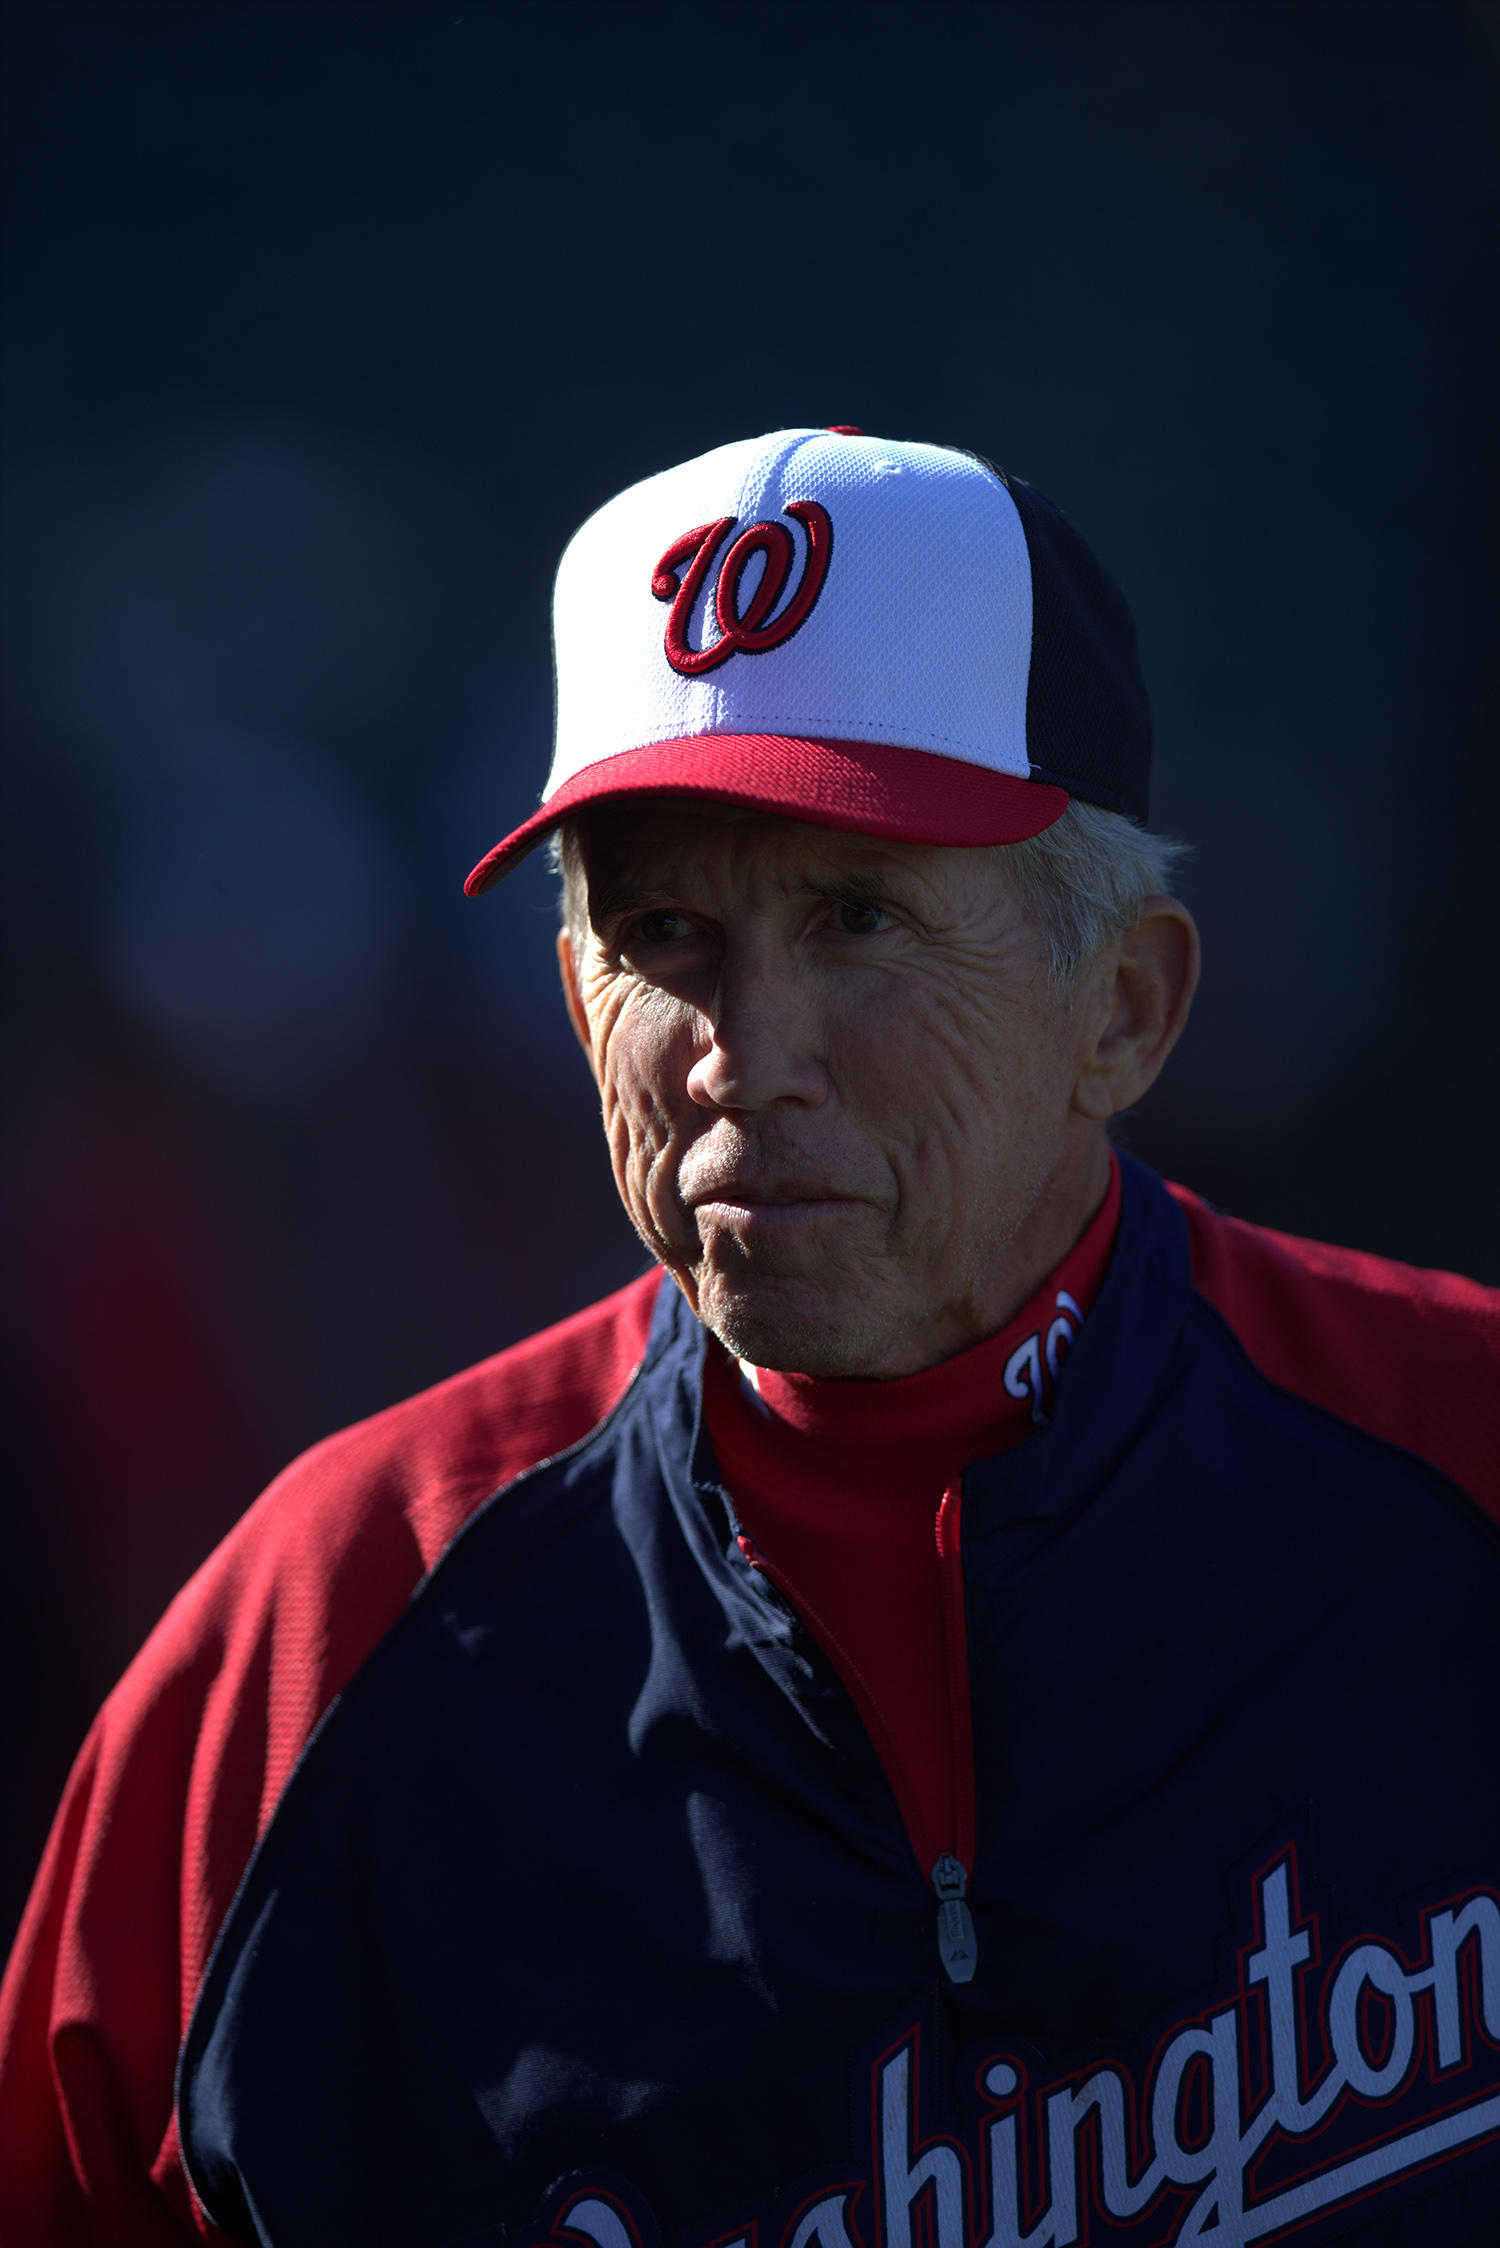 Davey Johnson was manager of the Nationals from 2011-2013. (Brad Mangin / National Baseball Hall of Fame)